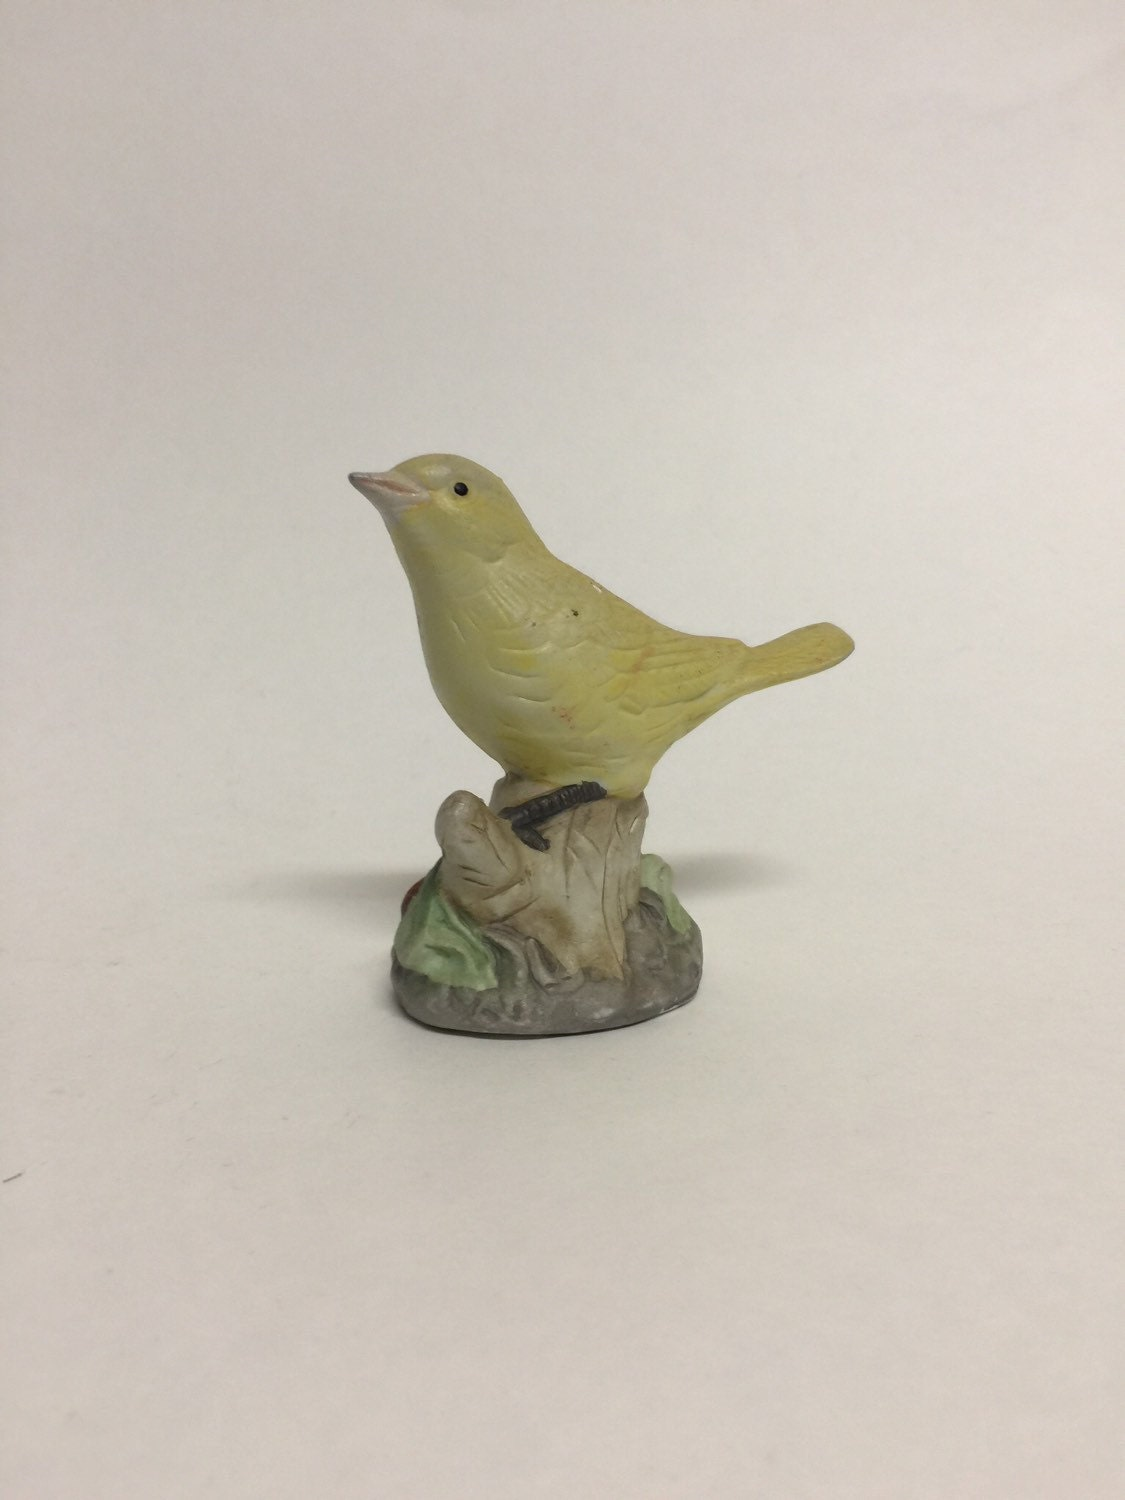 Vintage Small Yellow Bird Figurine Canary Figurine